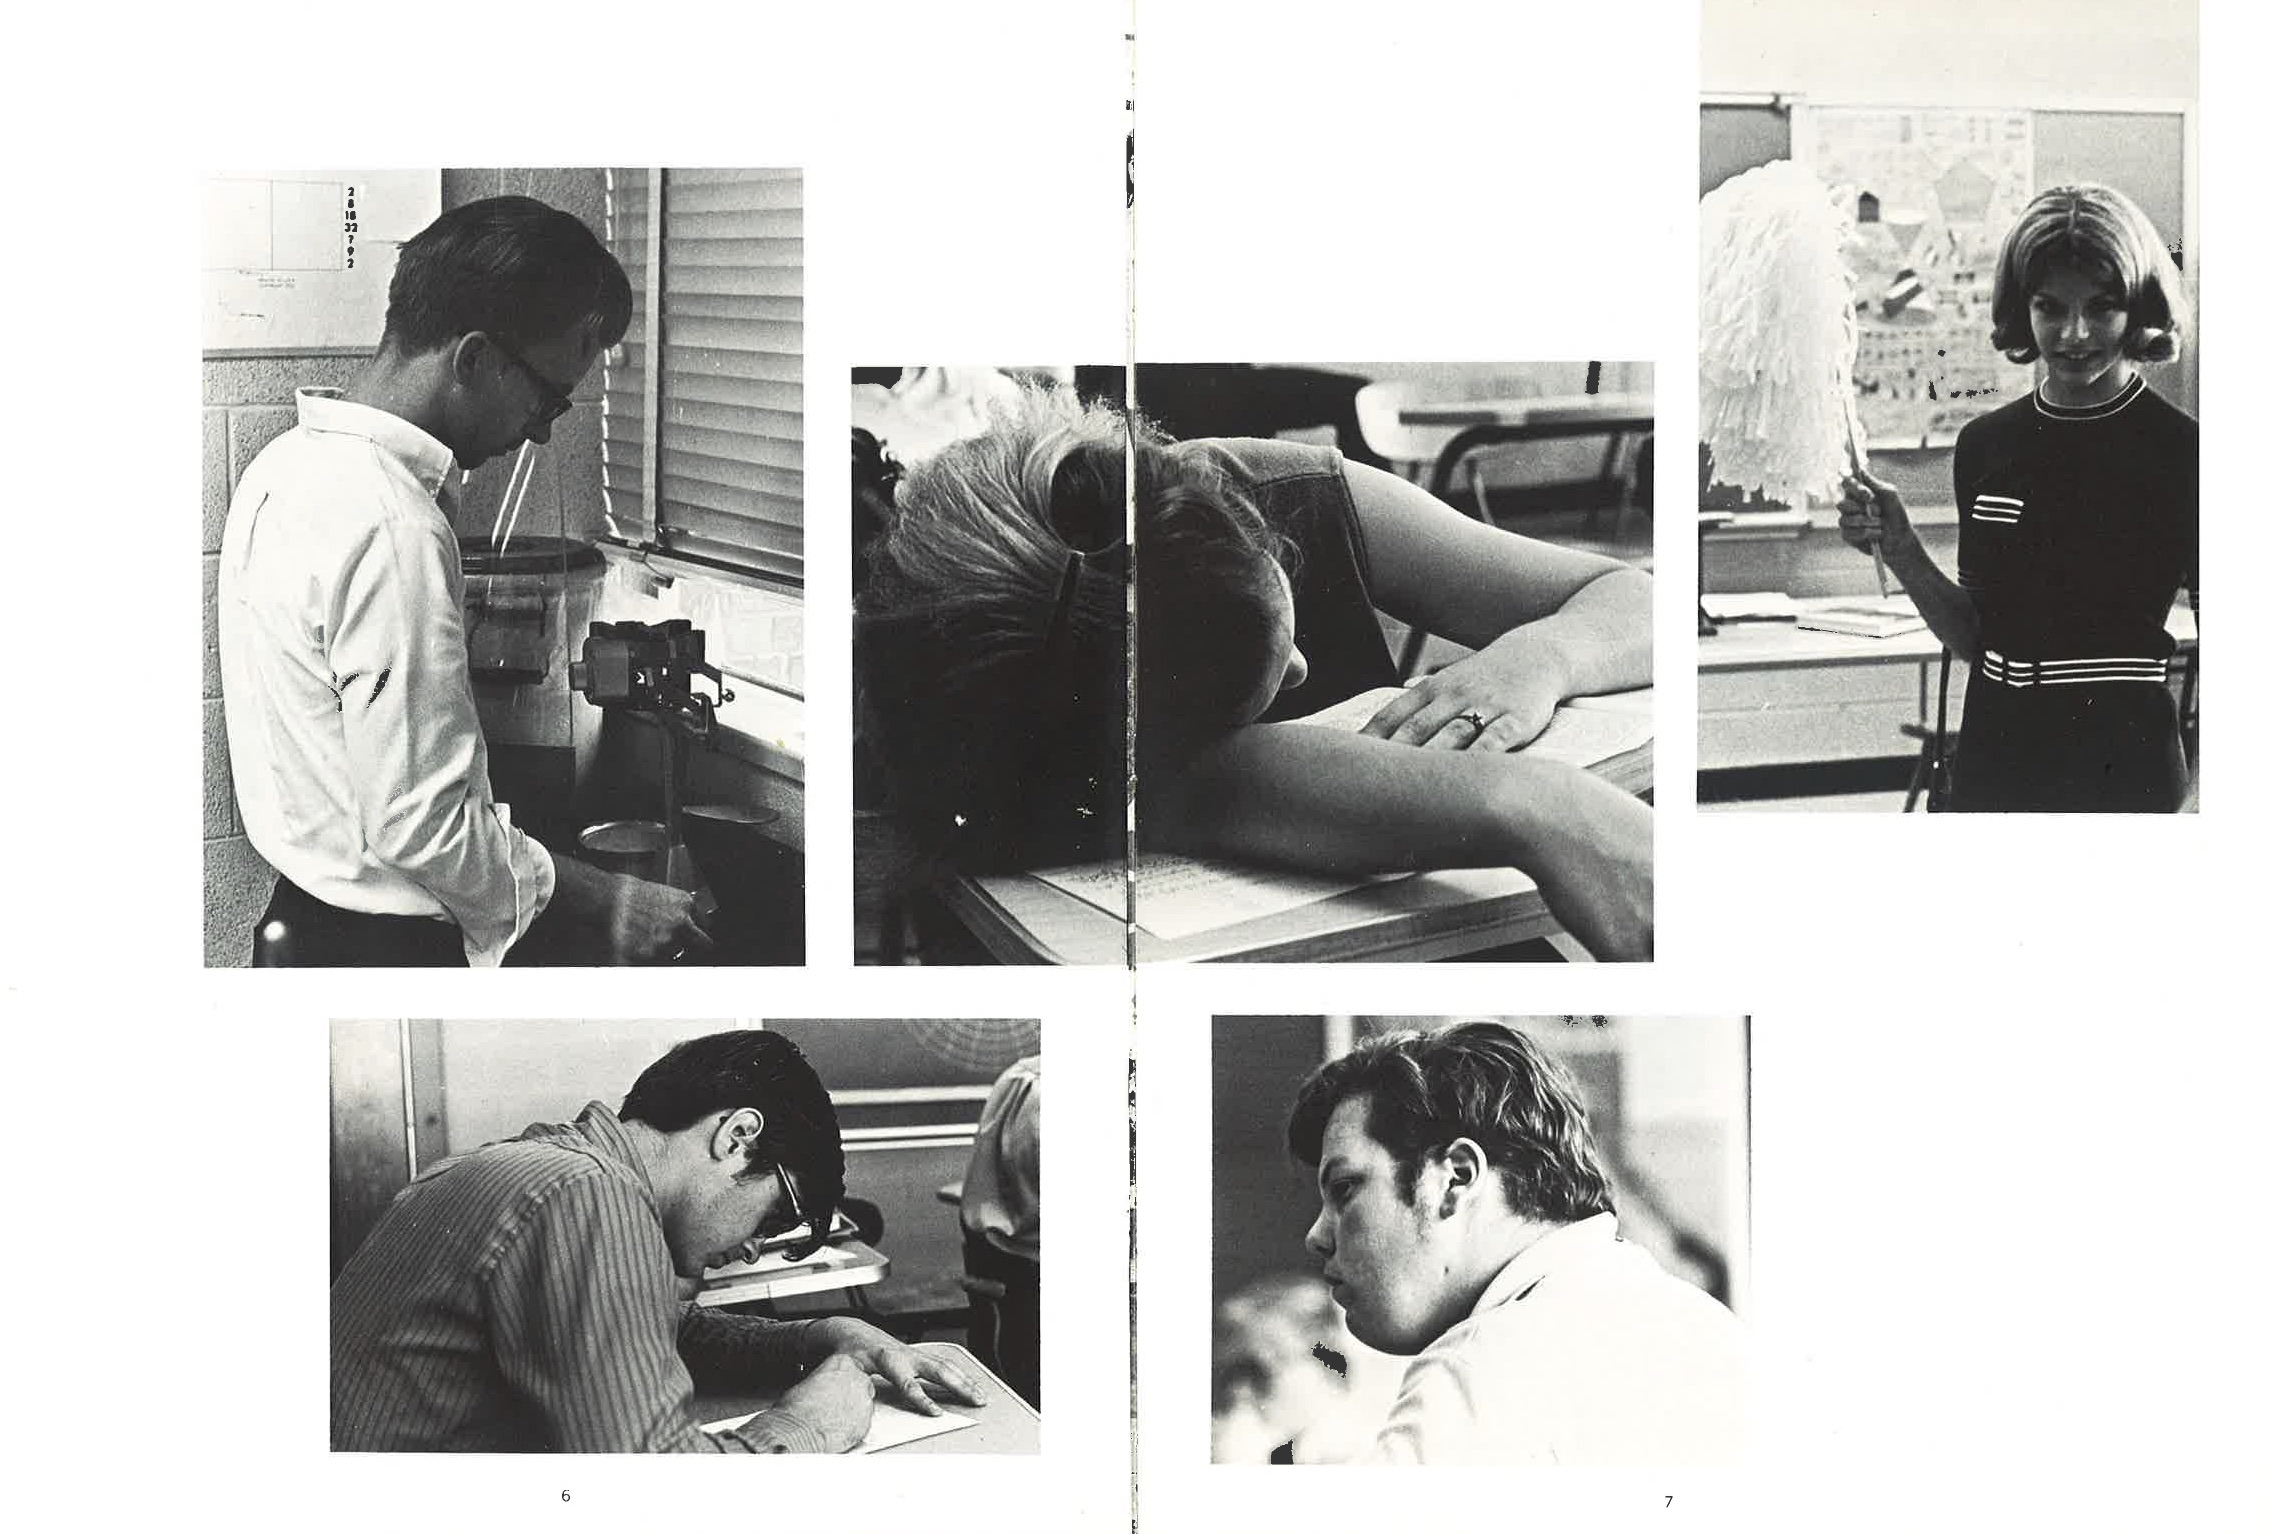 1971_Yearbook_6-7.jpg